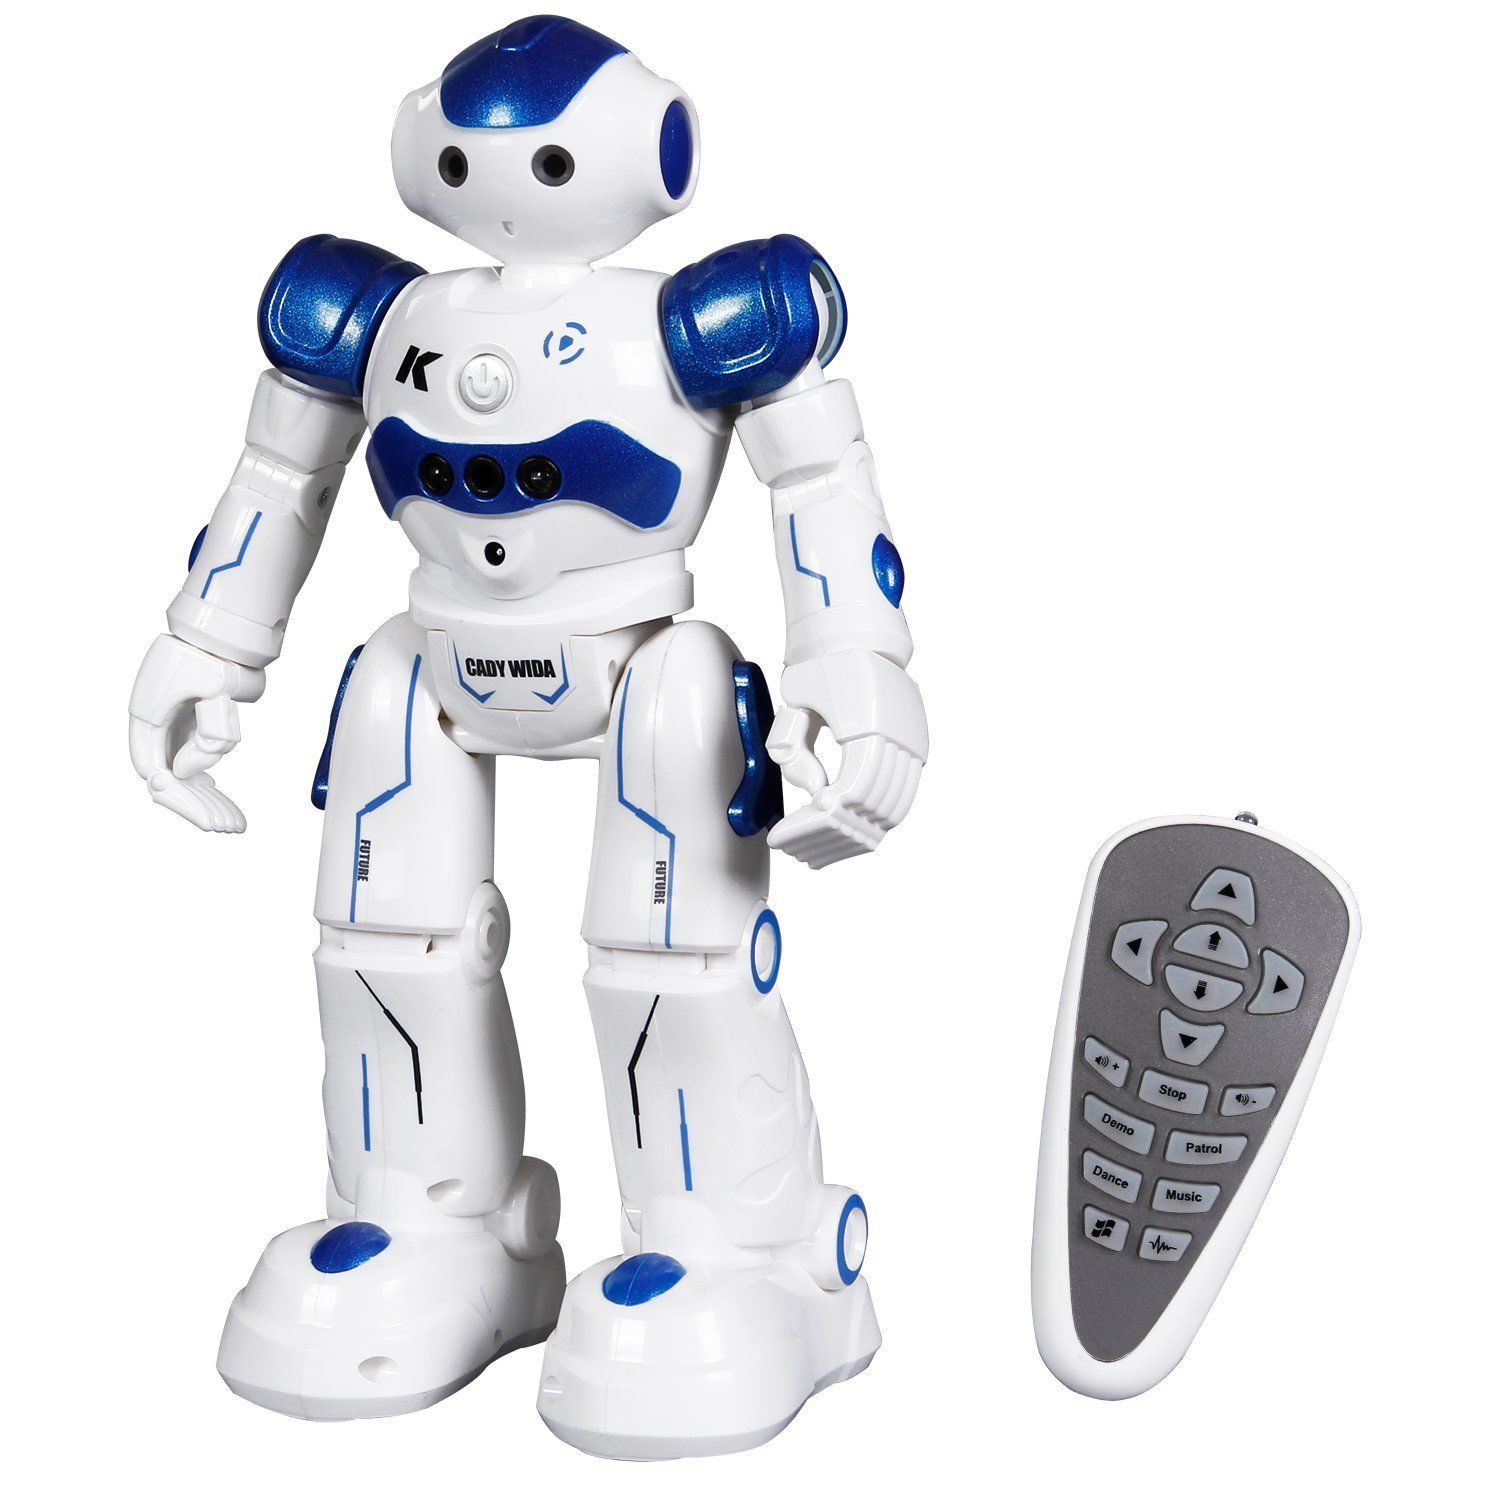 Details About Toys For Boys Robot Kids Birthday Gift Toddler 6 7 8 9 Year Old Age